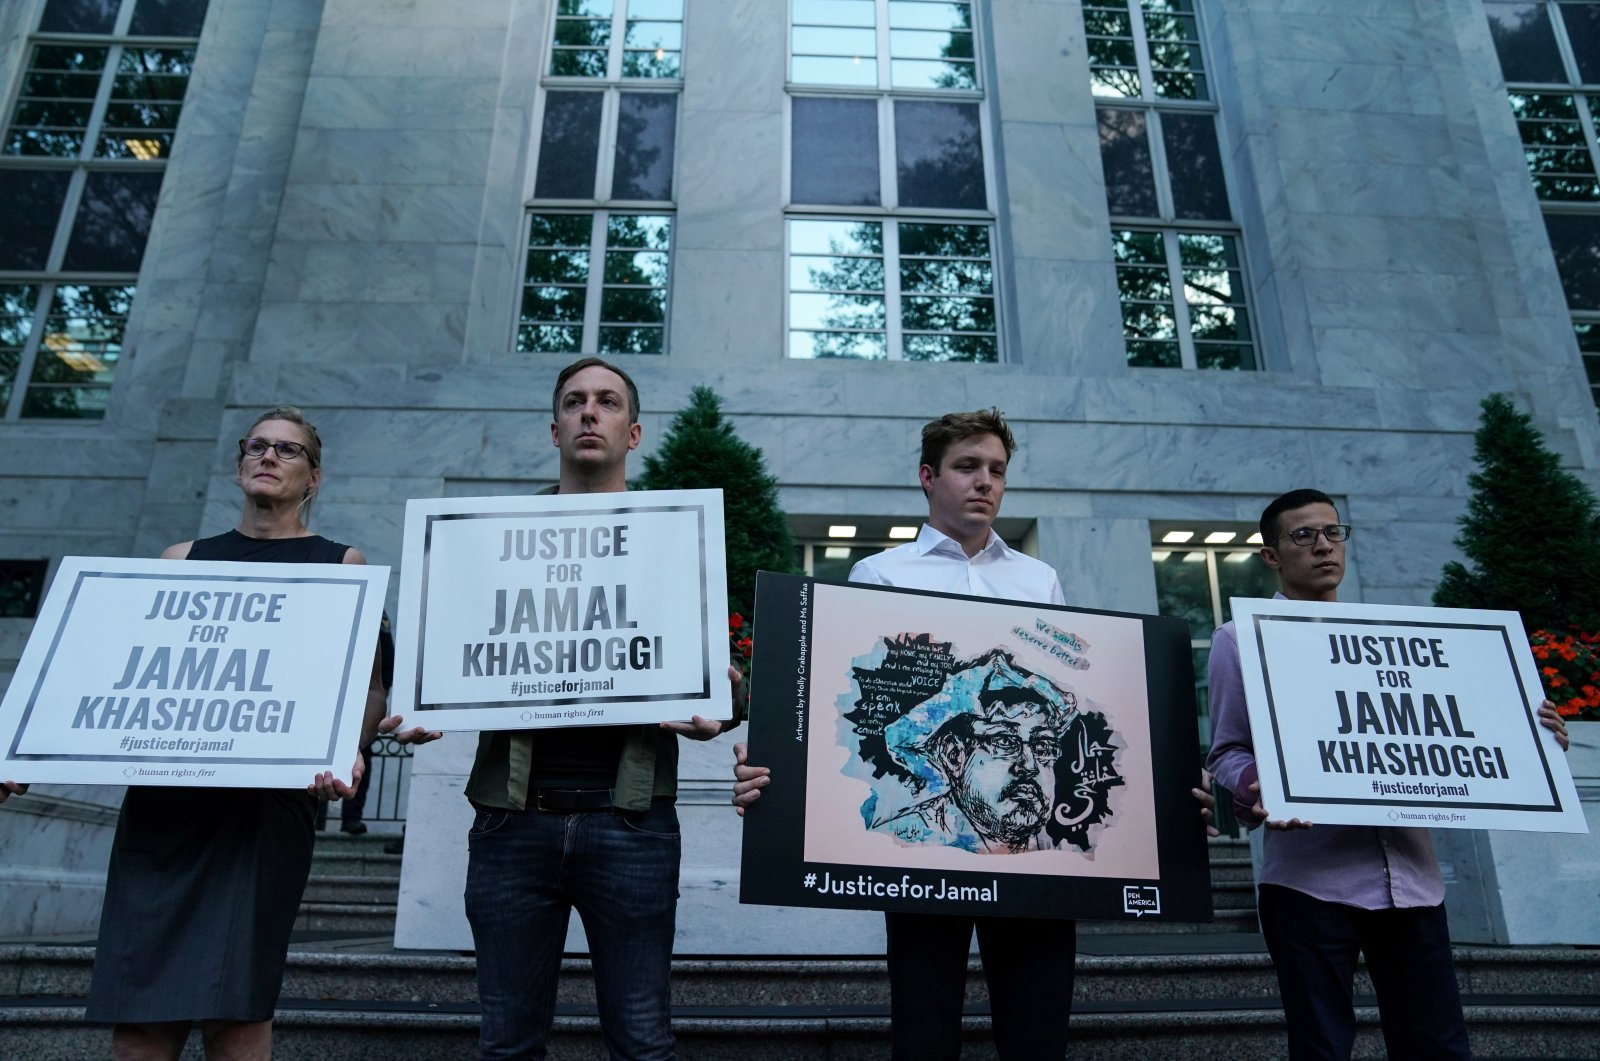 The Committee to Protect Journalists and other press freedom activists hold a candlelight vigil in front of the Saudi Embassy to mark the anniversary of the killing of journalist Jamal Khashoggi at the kingdom's consulate in Istanbul, Washington, D.C., Oct. 2, 2019. (Reuters Photo)